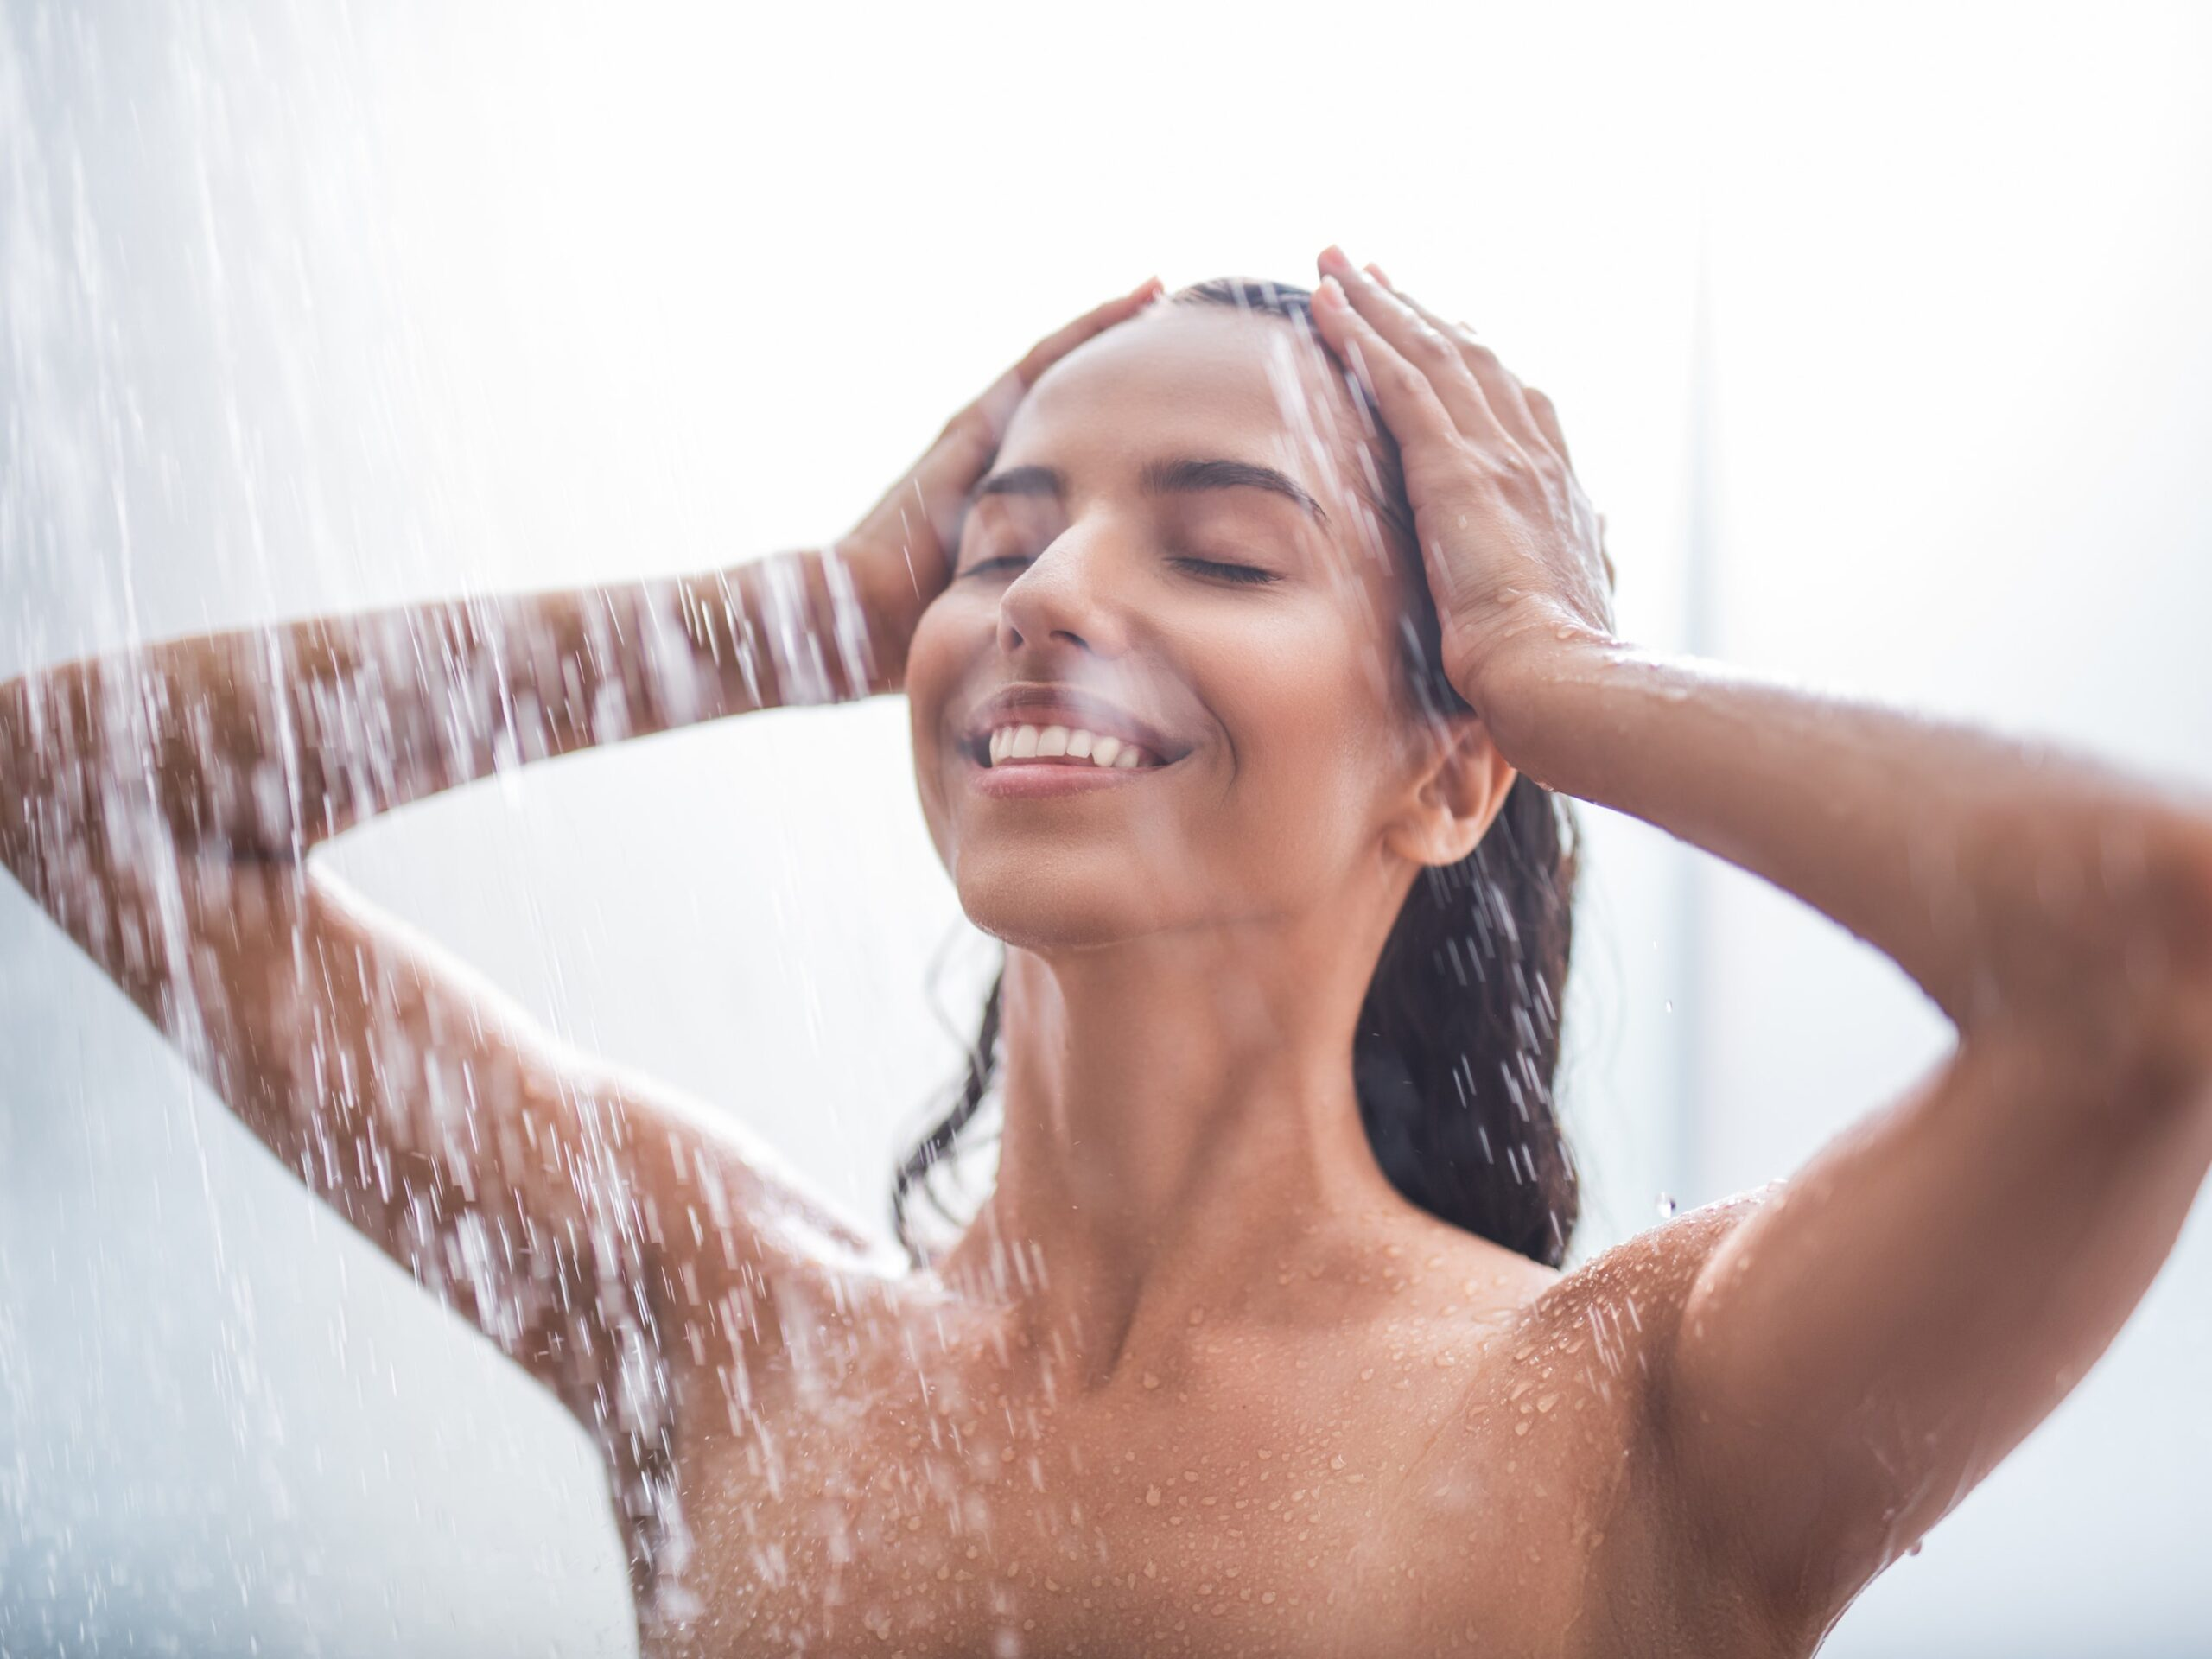 Are You Making These Shower Mistakes? 5 Things That Harm The Skin